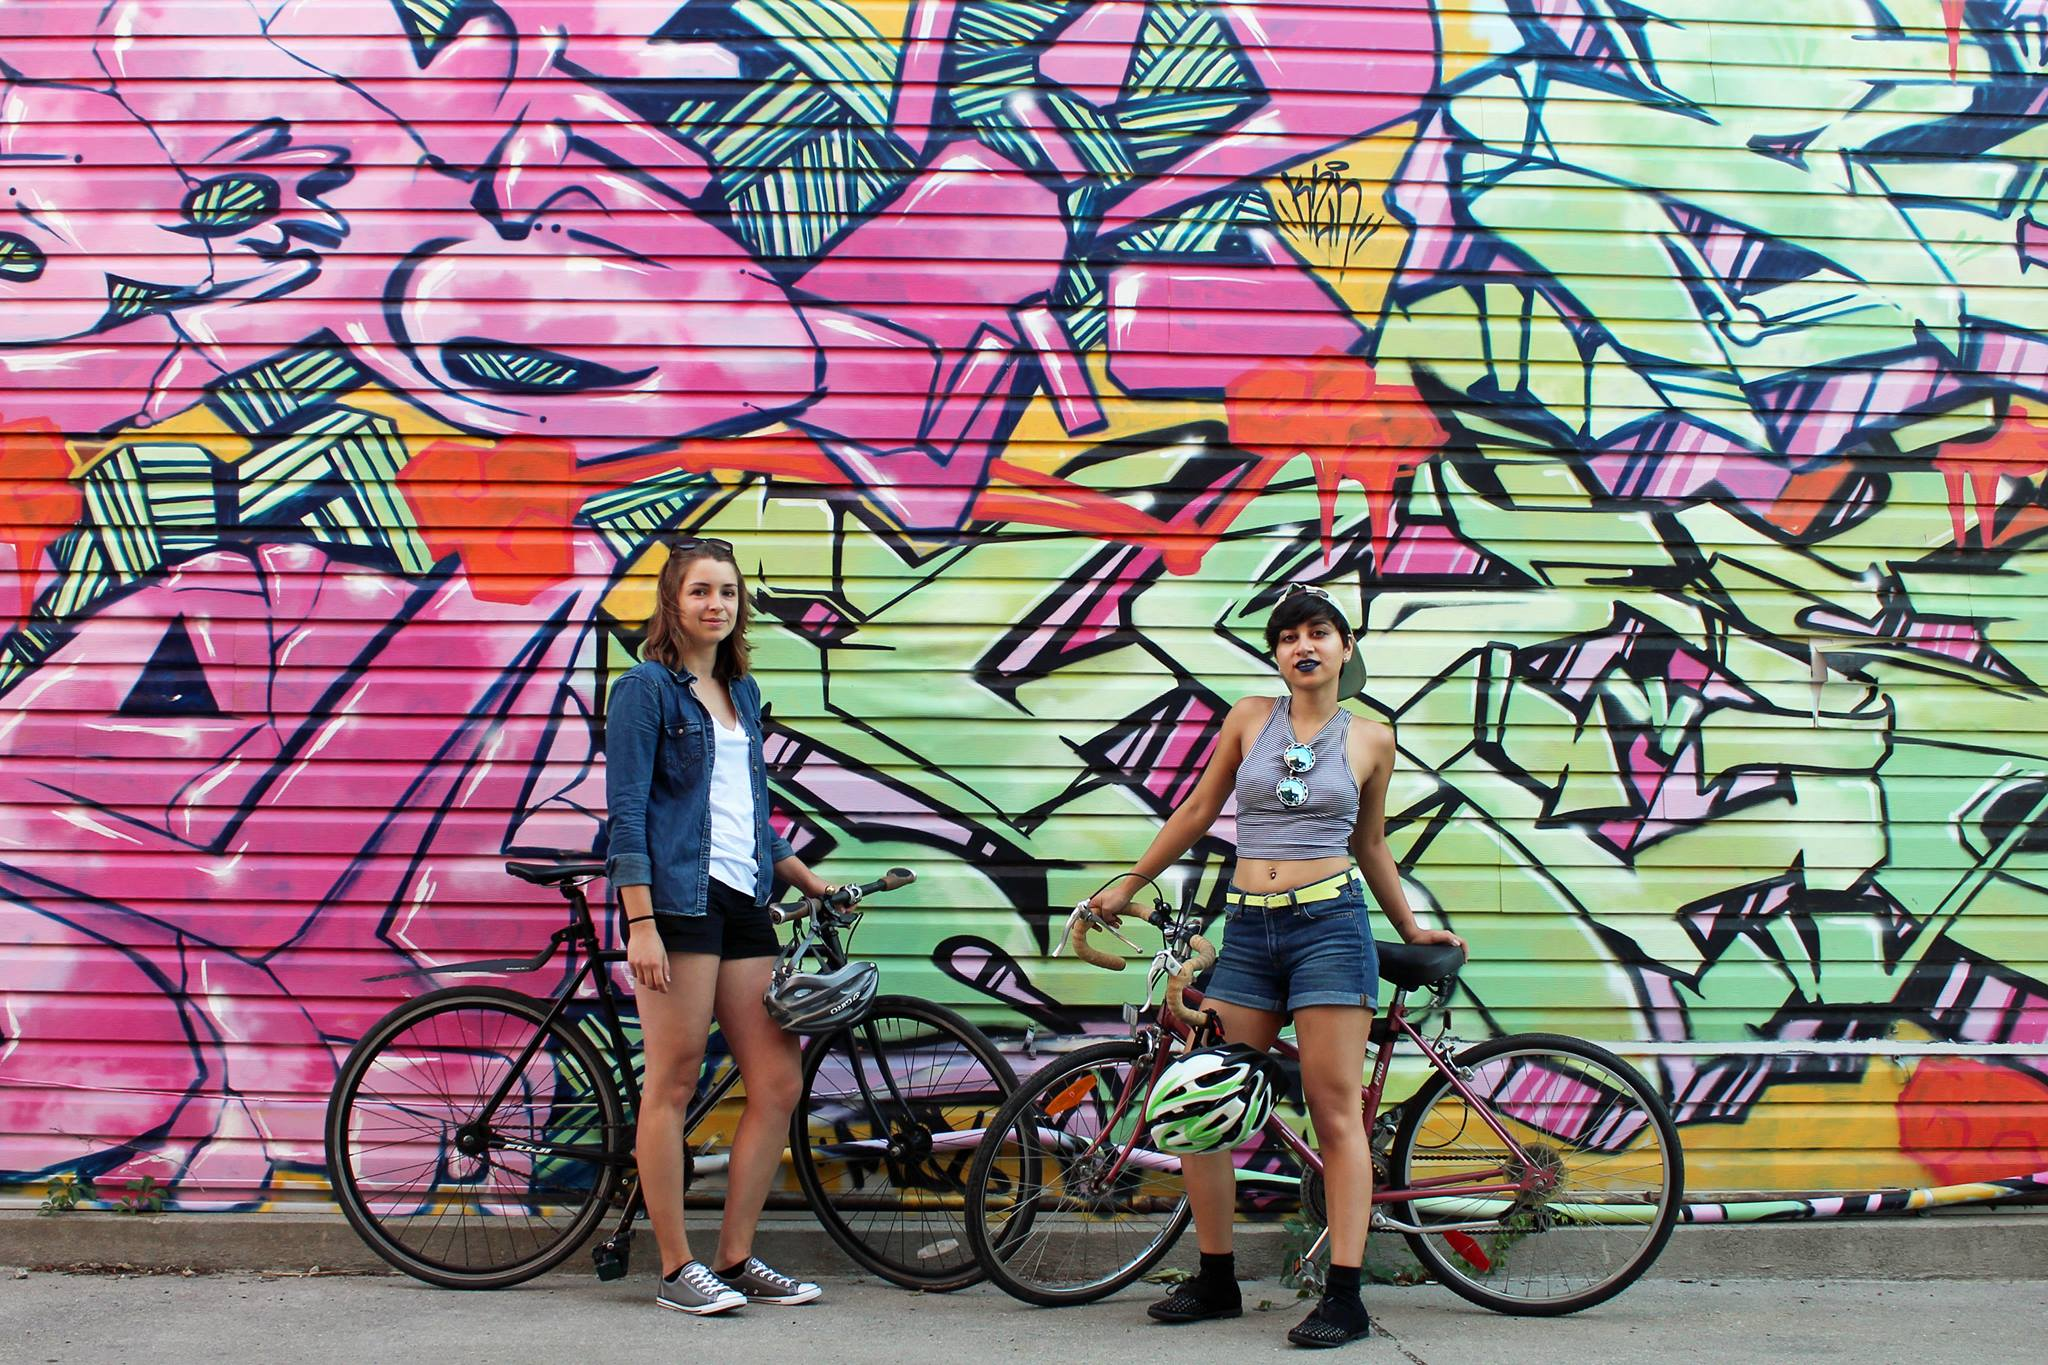 Claire McFarlane and Lavinia Tanzim of the Bad Girls Bike Club. Photo courtesy of Facebook.